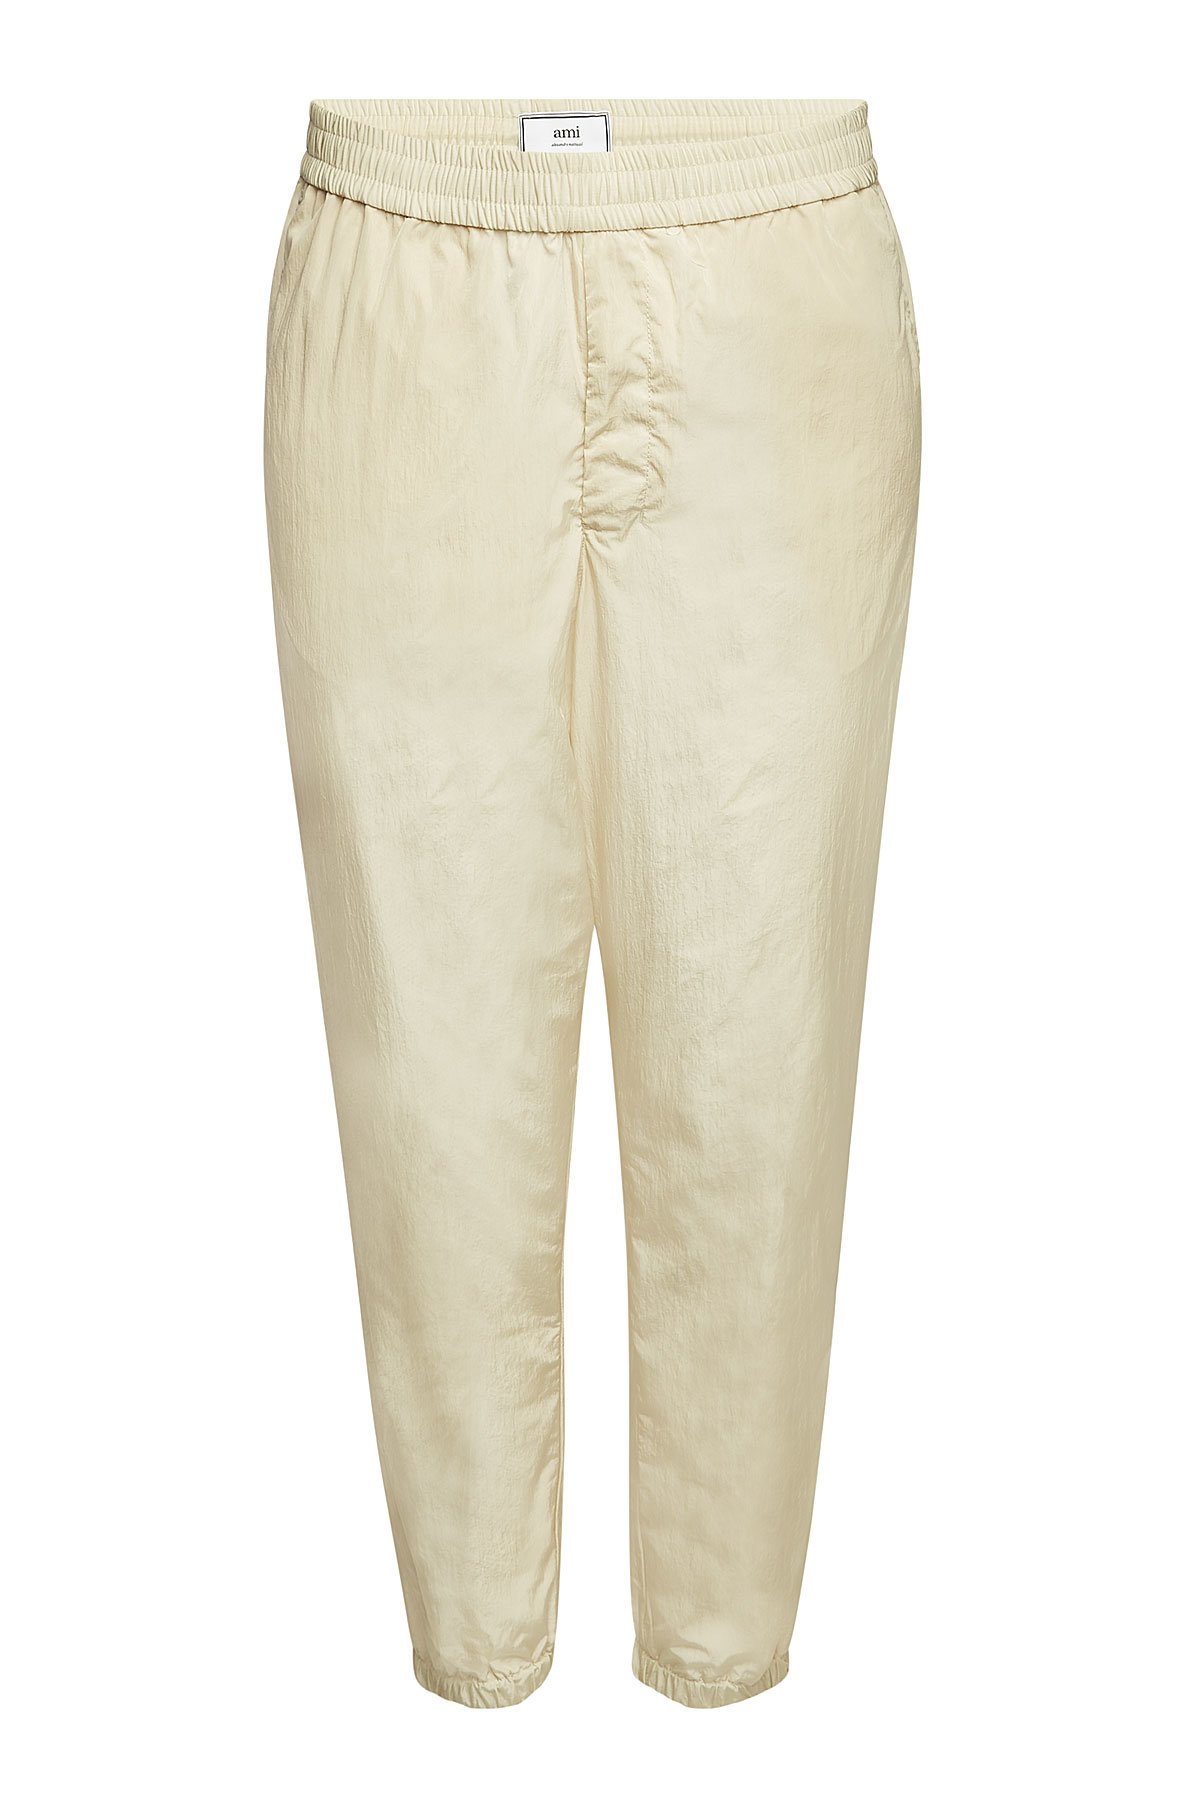 6130cb00cda7 Ami Alexandre Mattiussi Track Pants With Elasticated Waist In Beige ...